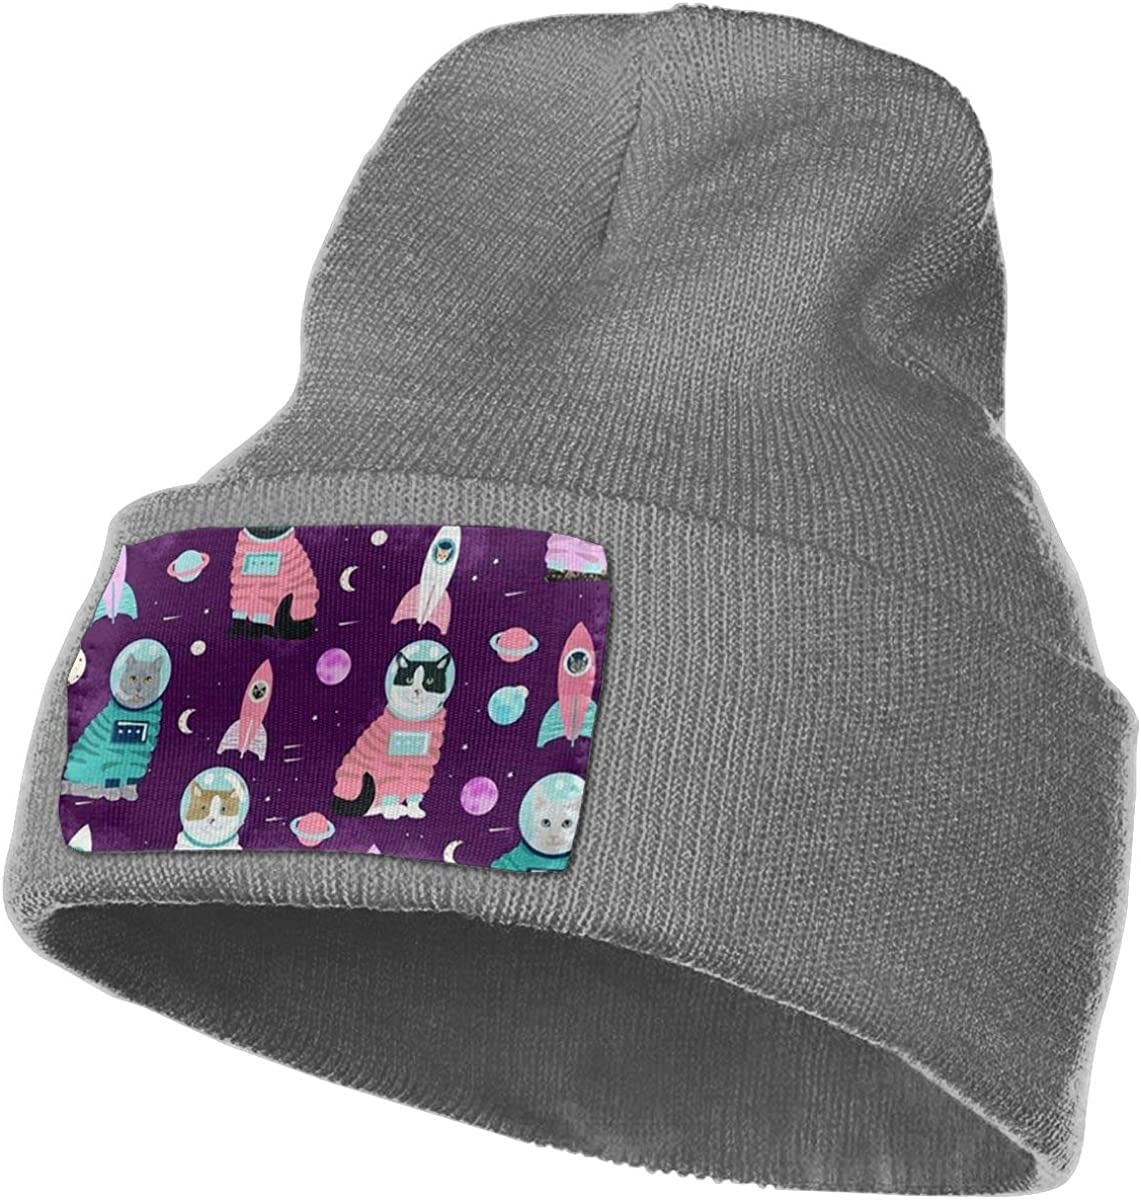 ONHIM Space Cat Men Women Stretchy Knit Beanie Hat Slouchy Personalized Beanie